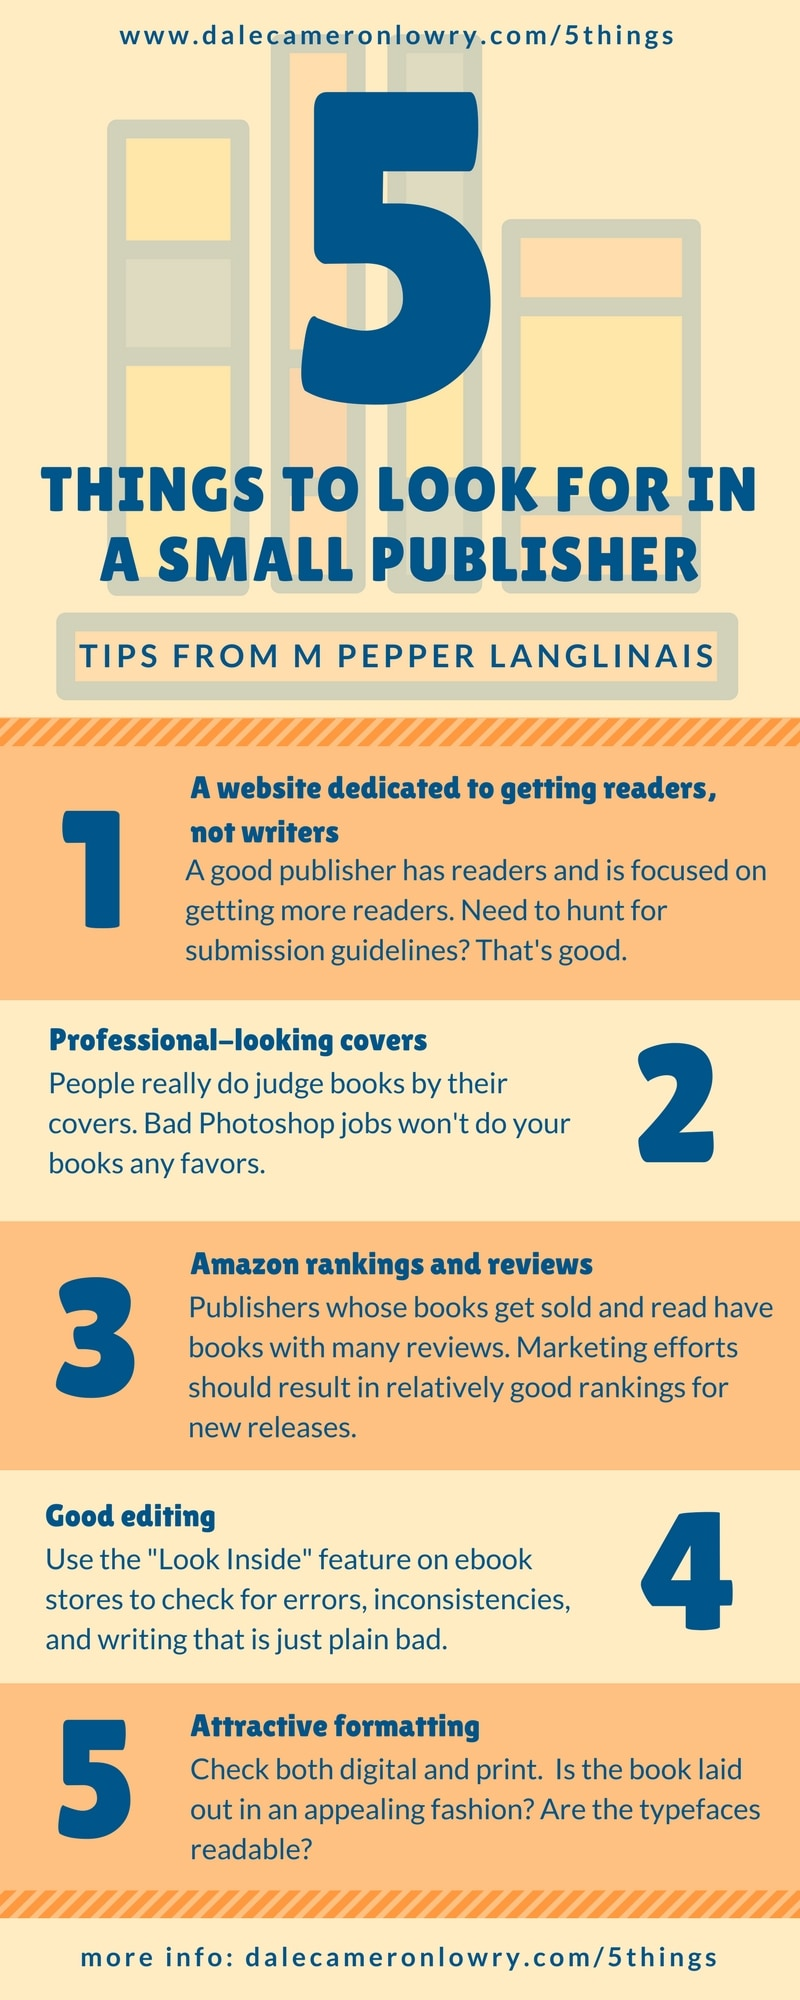 """Infographic with the following text source: dalecameronlowry.com/5things 5 Things to Look for in a Small Publisher Tips From M Pepper Langlinais A website dedicated to getting readers, not writers A good publisher has readers and is focused on getting more readers. Need to hunt for submission guidelines? That's good. Professional-looking covers Sorry, but people really do judge books by their covers. Crap covers that look like bad Photoshop jobs won't do your books any favors. Amazon rankings and reviews Publishers whose books get sold and read have books with many reviews. Marketing efforts should result in relatively good rankings for new releases. Good editing Use the """"Look Inside"""" feature on ebook stores to check for errors, inconsistencies, and writing that is just plain bad. Attractive formatting Check both digital and in print. Is the book laid out in an appealing fashion? Are the typefaces readable? more info: dalecameronlowry.com/5things"""